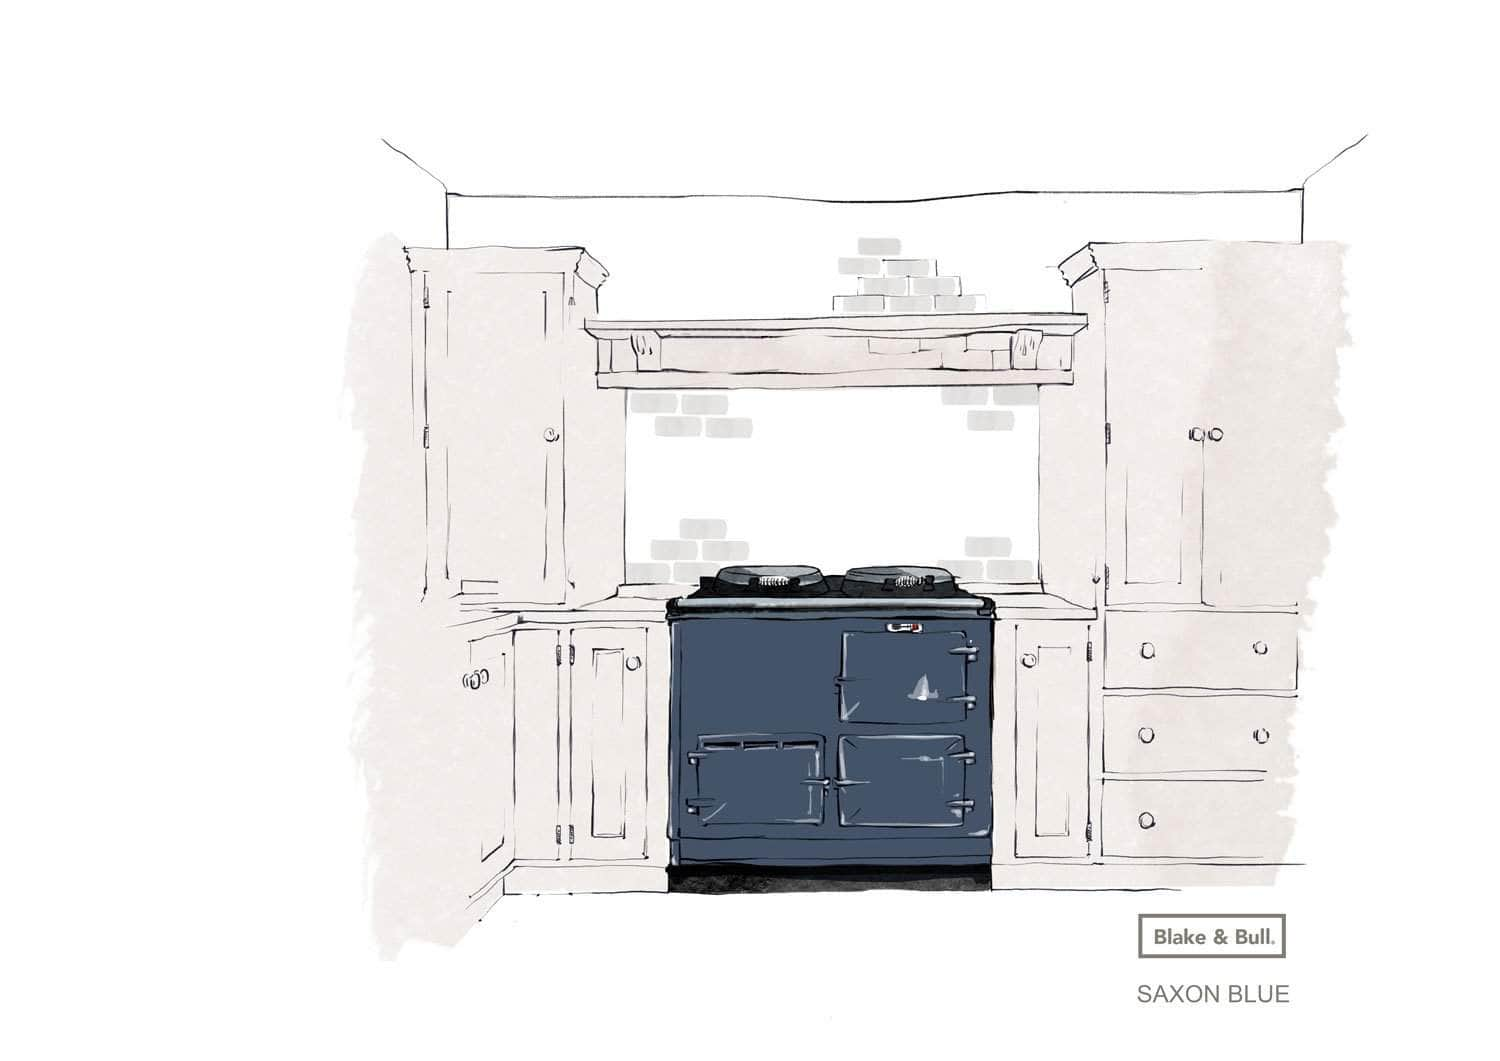 Reconditioned Aga range cooker 'Deluxe' (post-1974) 2 oven | 'eCook' by Blake & Bull | £7873 Saxon Blue / Pay in full and save £300. Use code 'SAVE300' at checkout